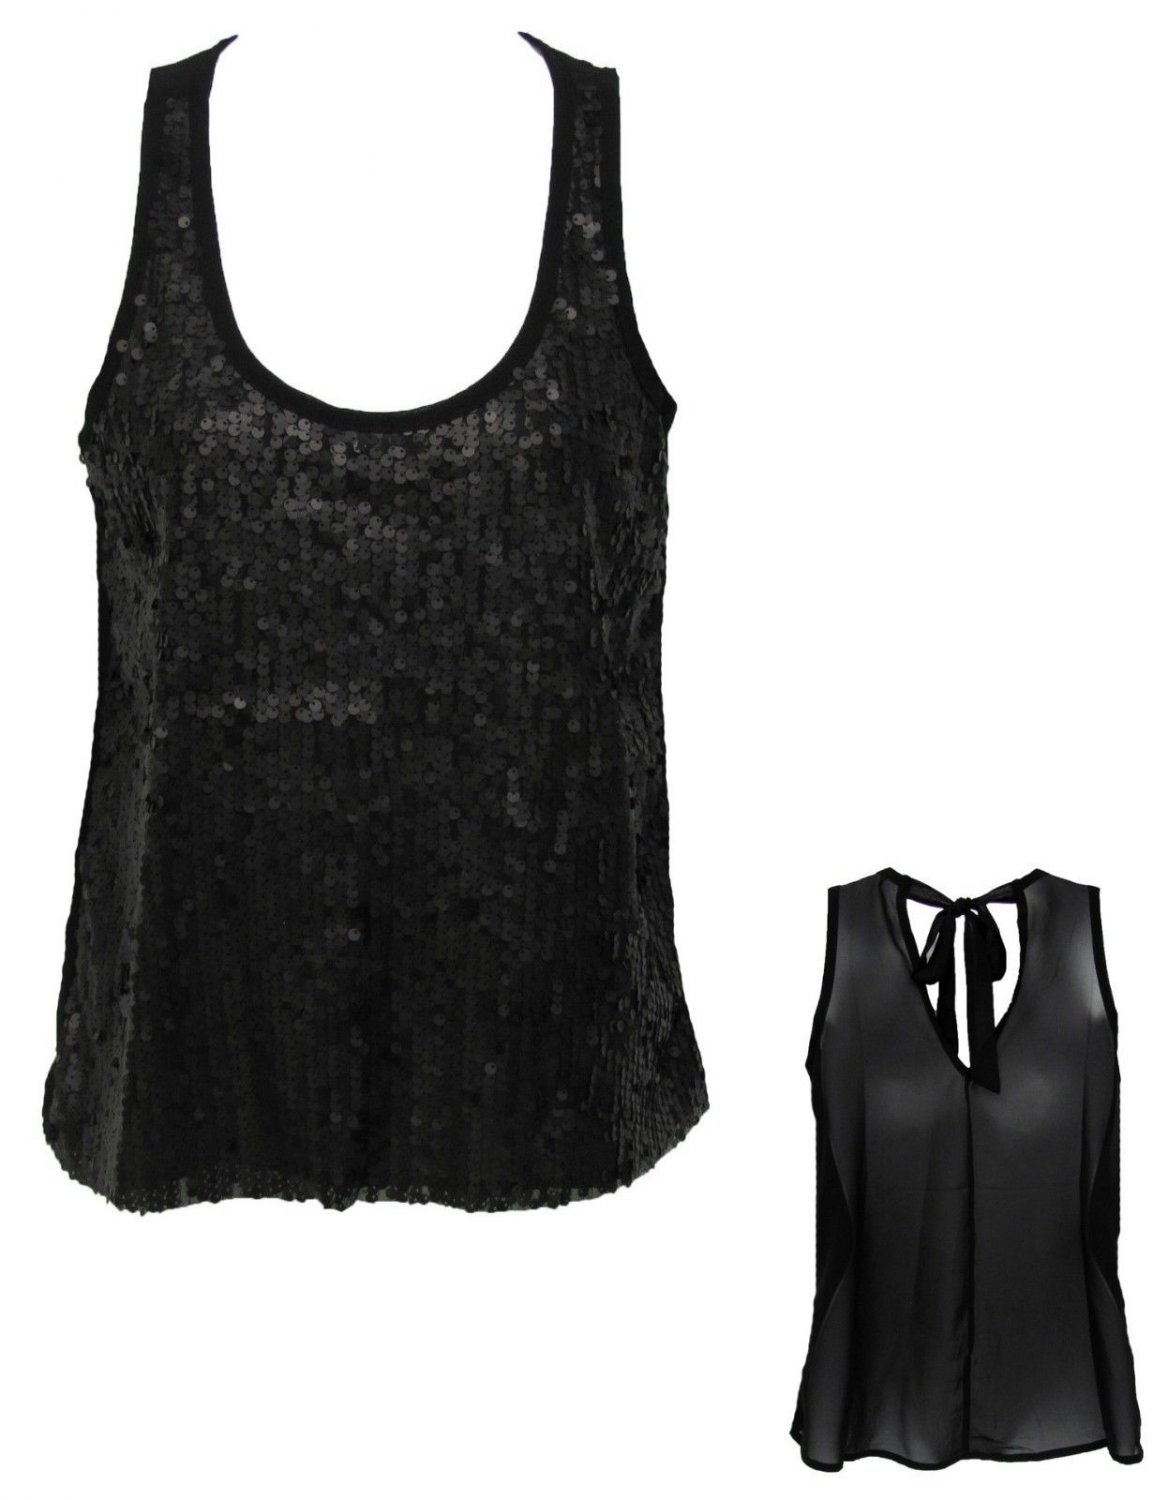 Kirra Juniors S Black Sequin Tank Top Shirt with Sheer Back